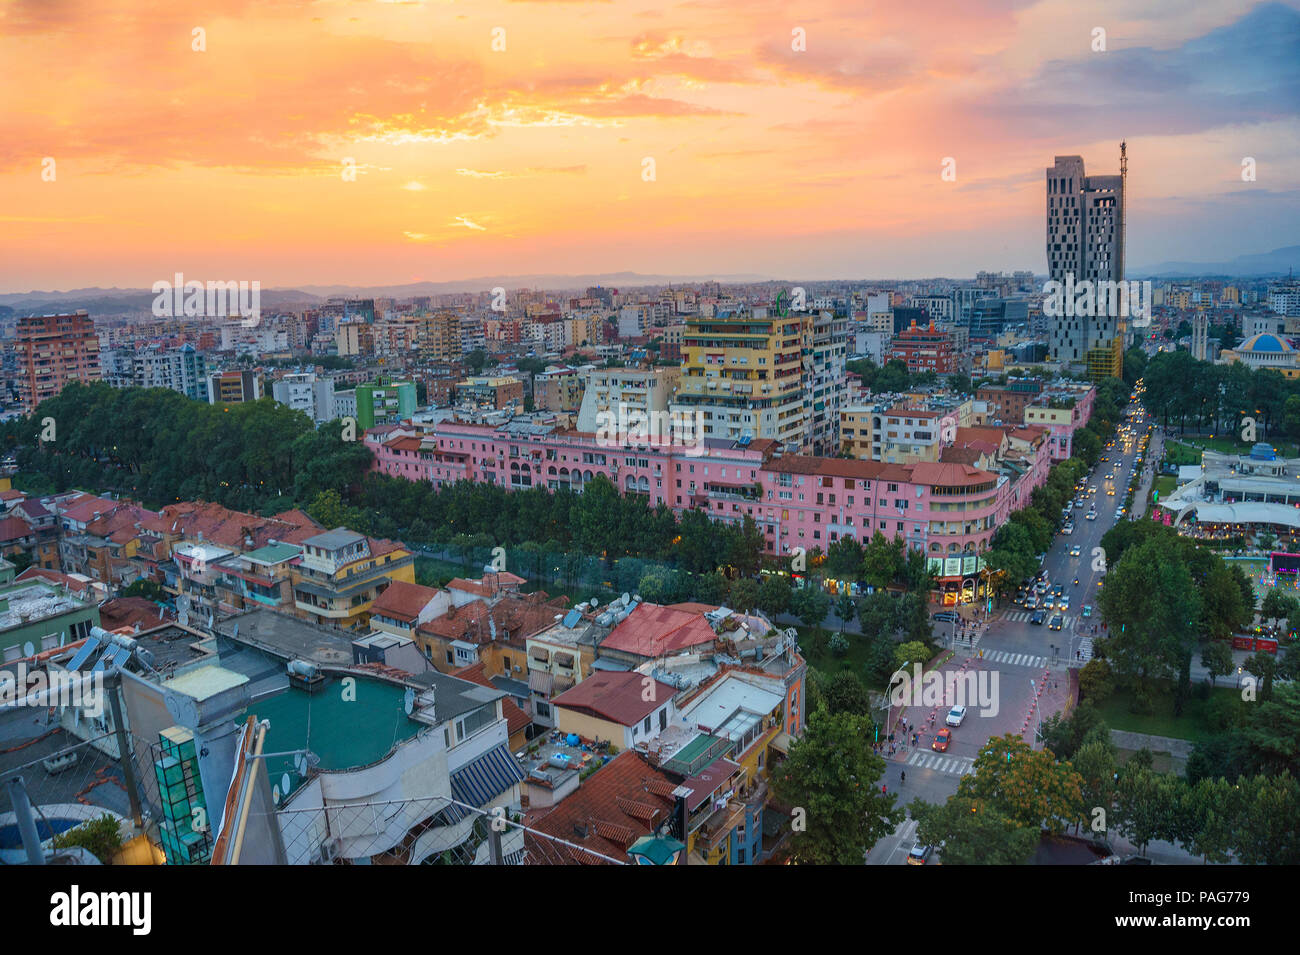 Areal cityscape view of Tirana city center at sunset. Modern Architectural buildings and urban photography in Tirana, the capital of Albania. Stock Photo